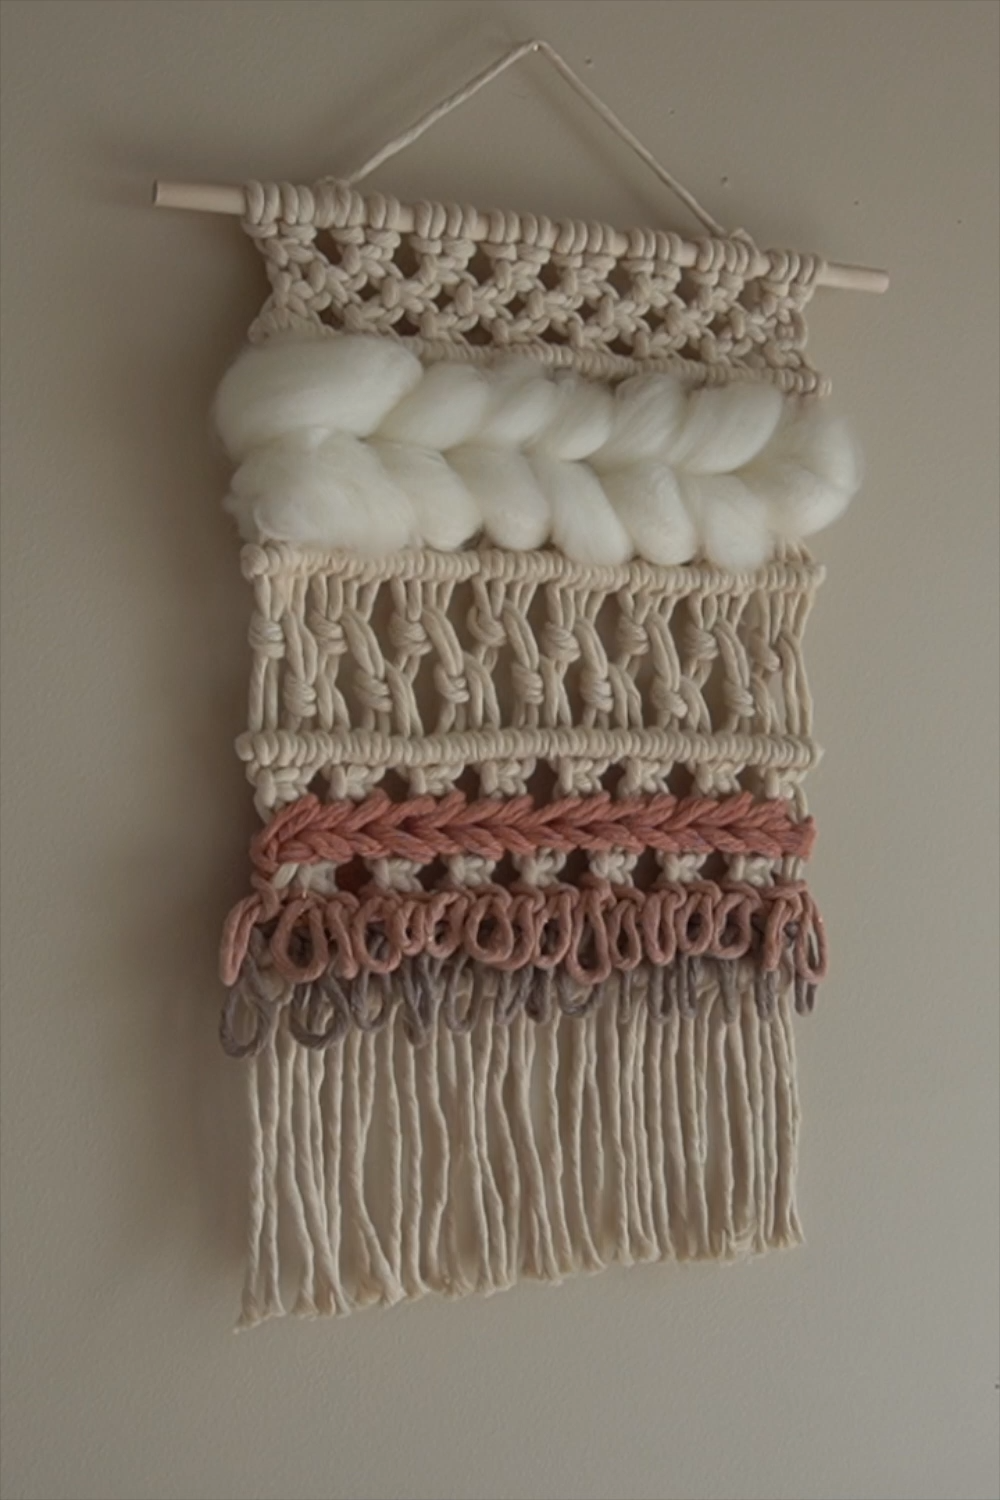 It's that time of the month again for our #makingmacrame ebook pattern. Today, we will go over some weaving techniques you can incorporate into your macrame pieces. Macrame + weaving is macraweaving. It's another form of a macrame knotting technique. This pattern consists of 3 basic macrame knots (Lark's Head, Square knot and Clove Hitch) and 2 weaving techniques (Soumak weave and Rya Loop knot).   #handweave #macrameweaveknot #howtoweavetapestry #weavingtechniques #macramepattern #weavepattern